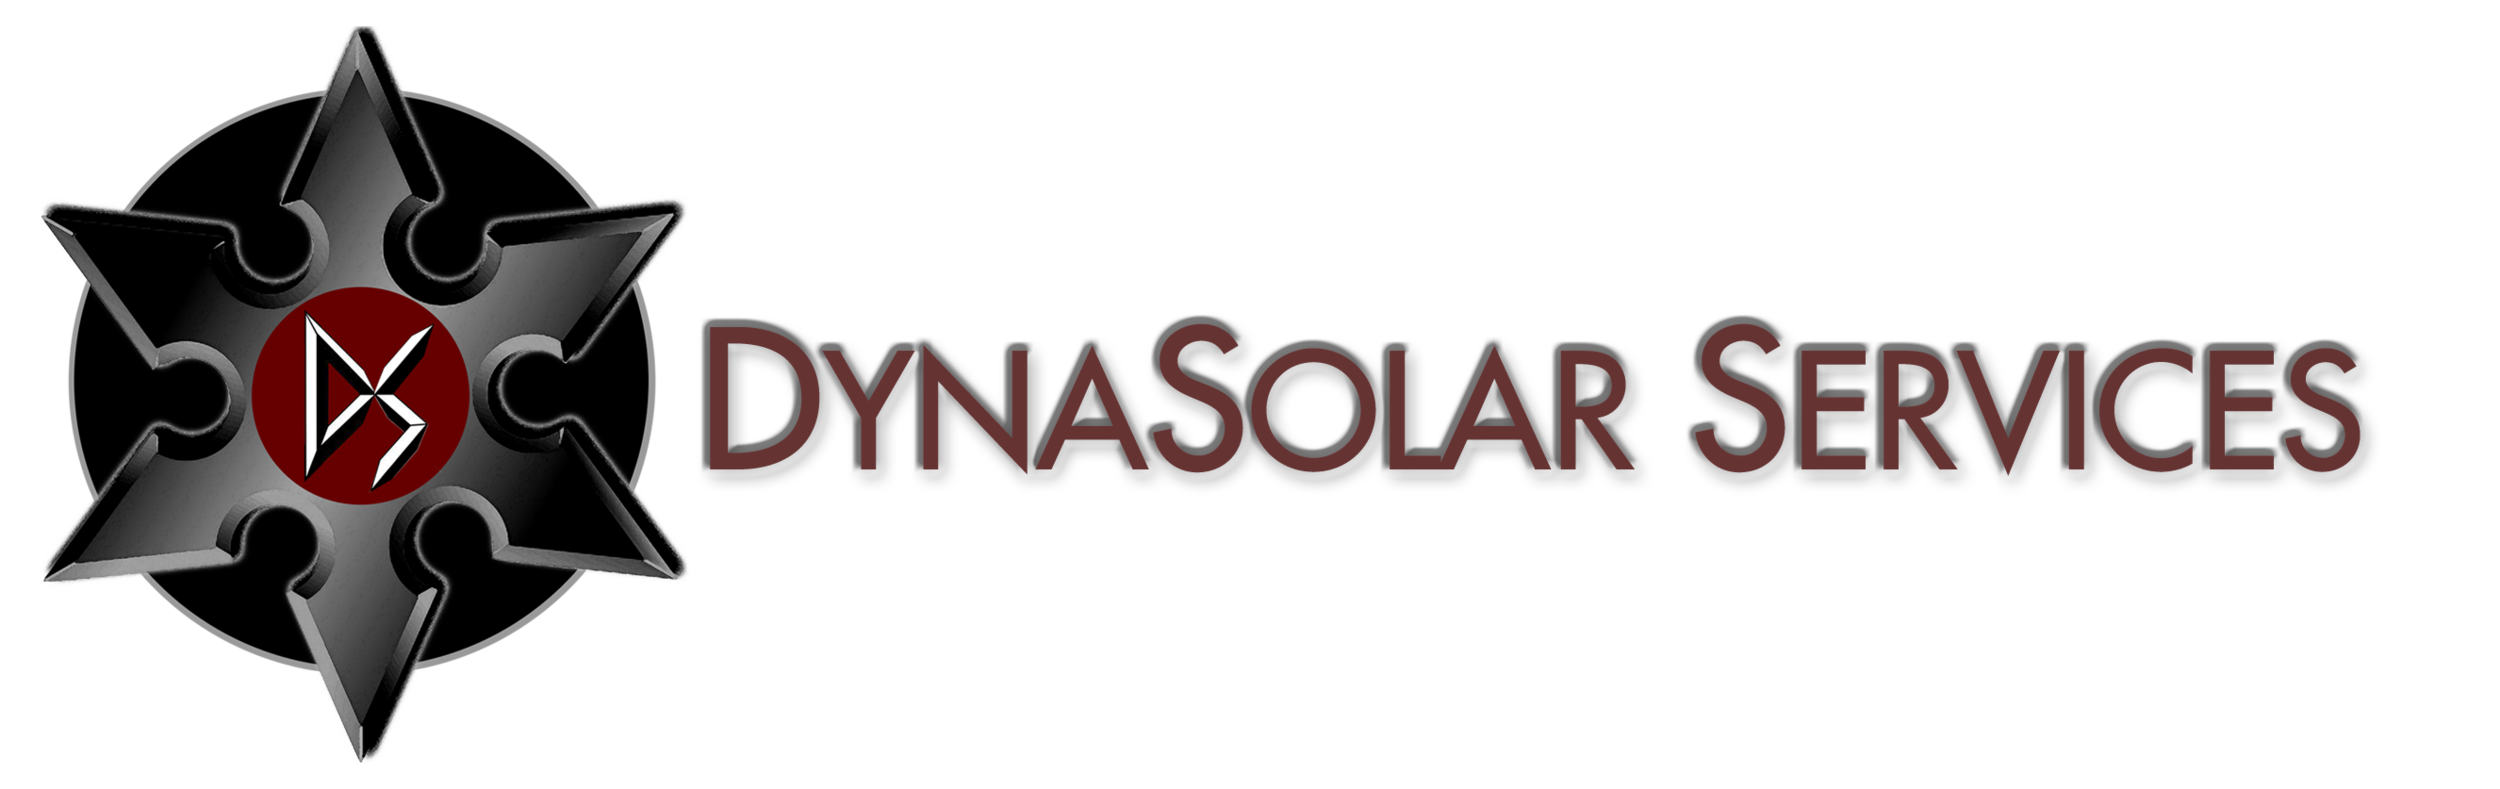 dynasolar-services.png